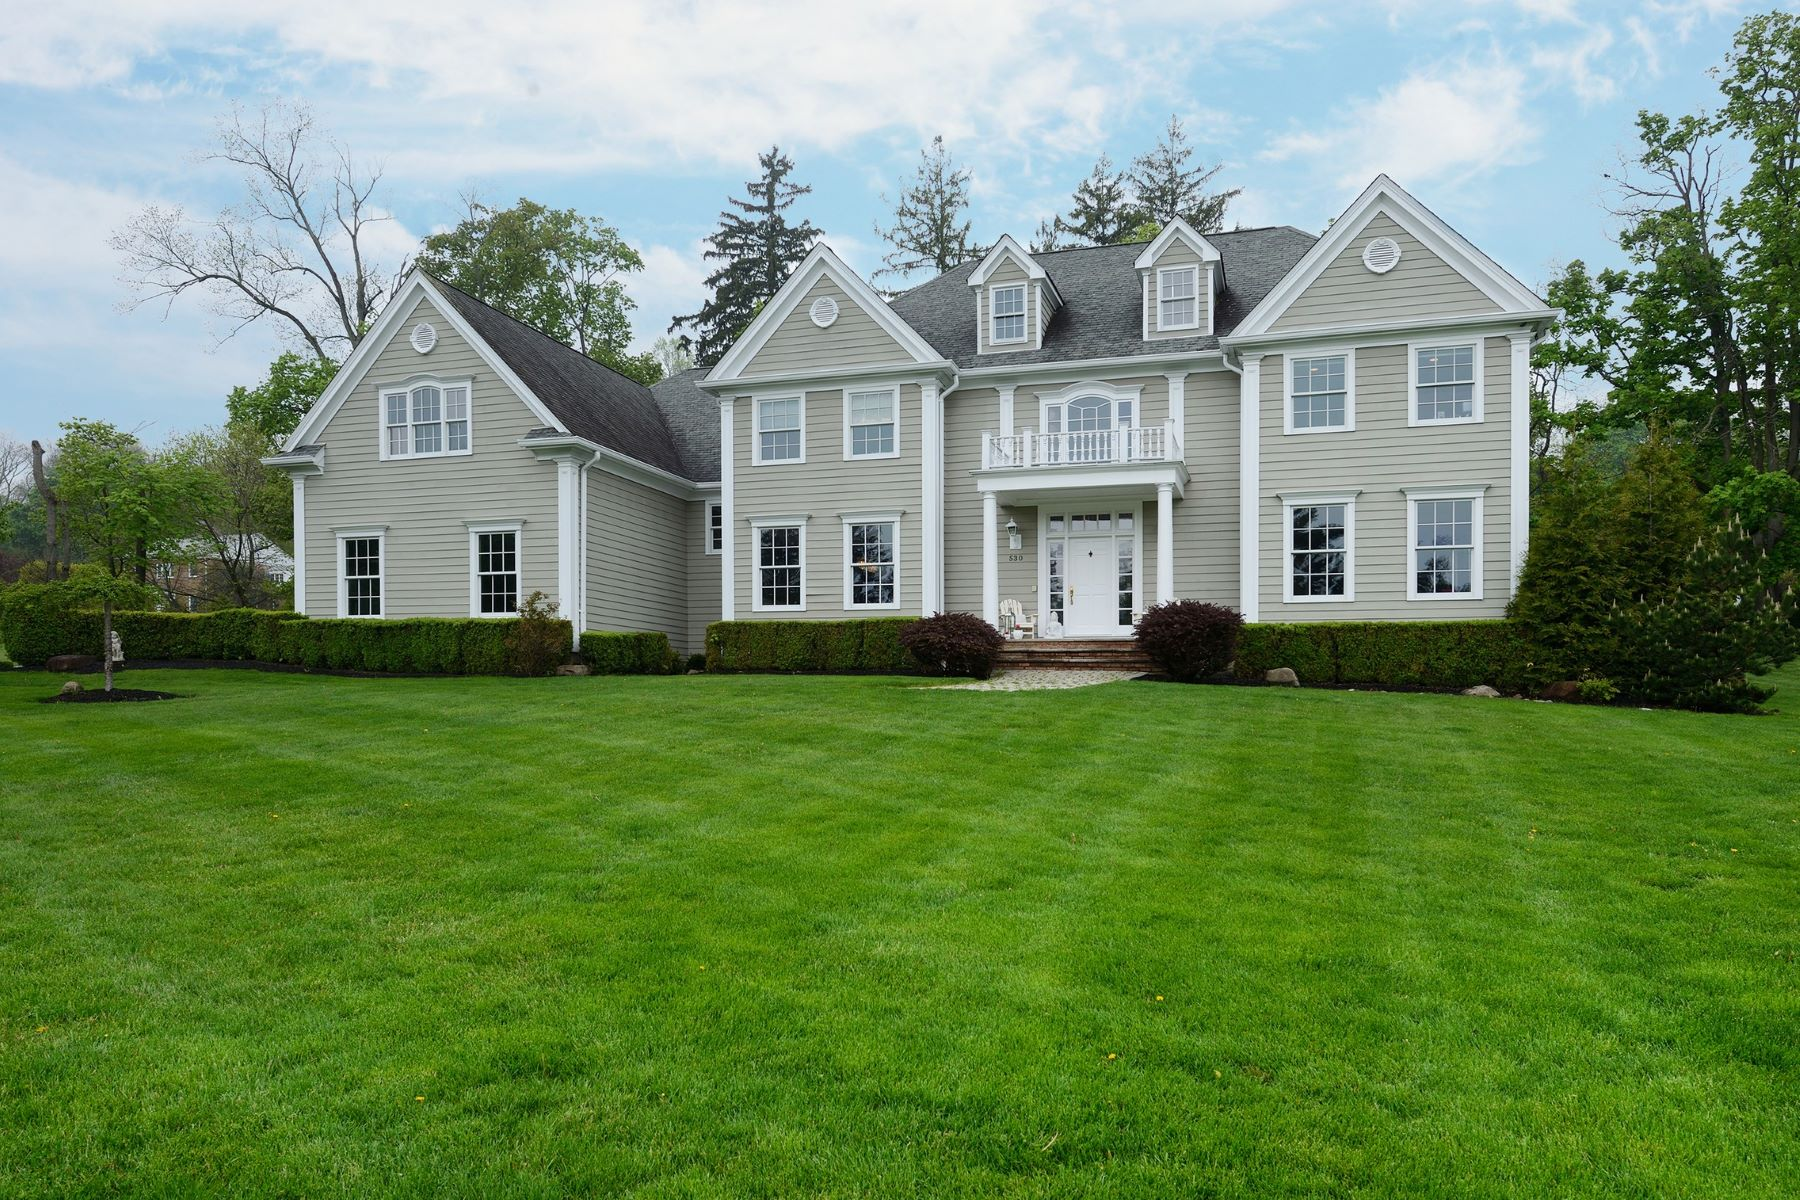 Single Family Home for Sale at Stately Revival Style Colonial 530 North Broadway Upper Nyack, New York 10960 United States